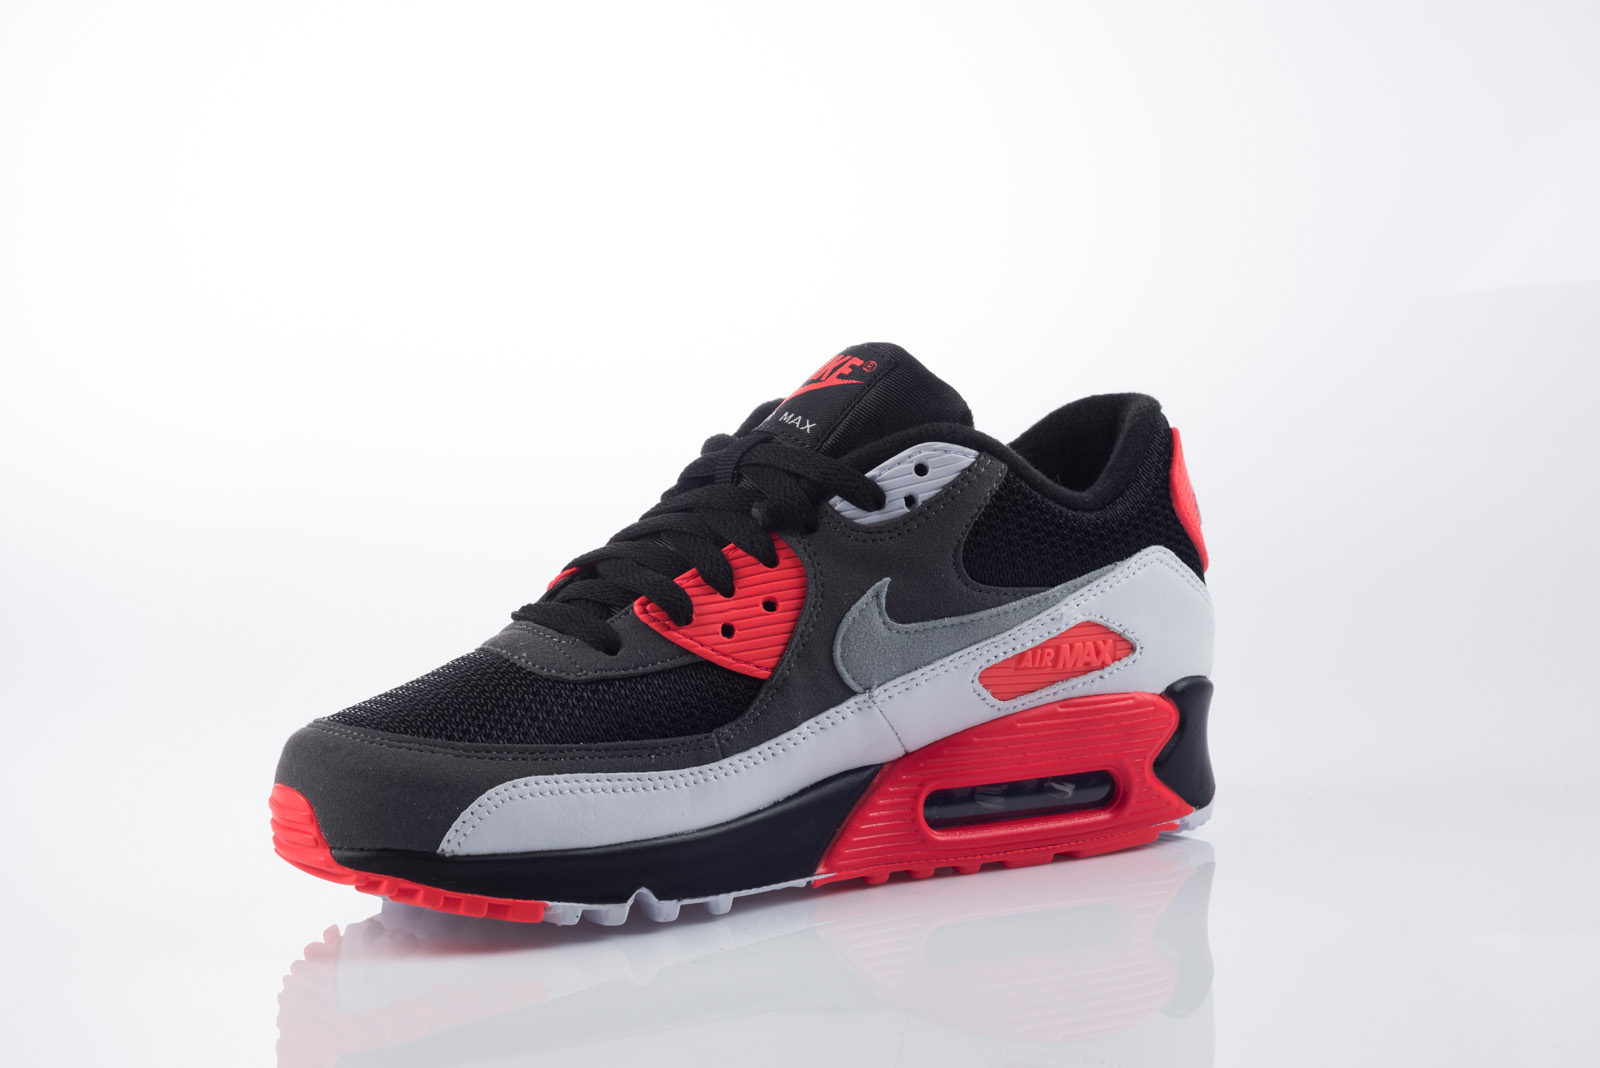 03af56aba39 Nike Air Max 90 25th Anniversary - Infrared Reverse - SneakersBR